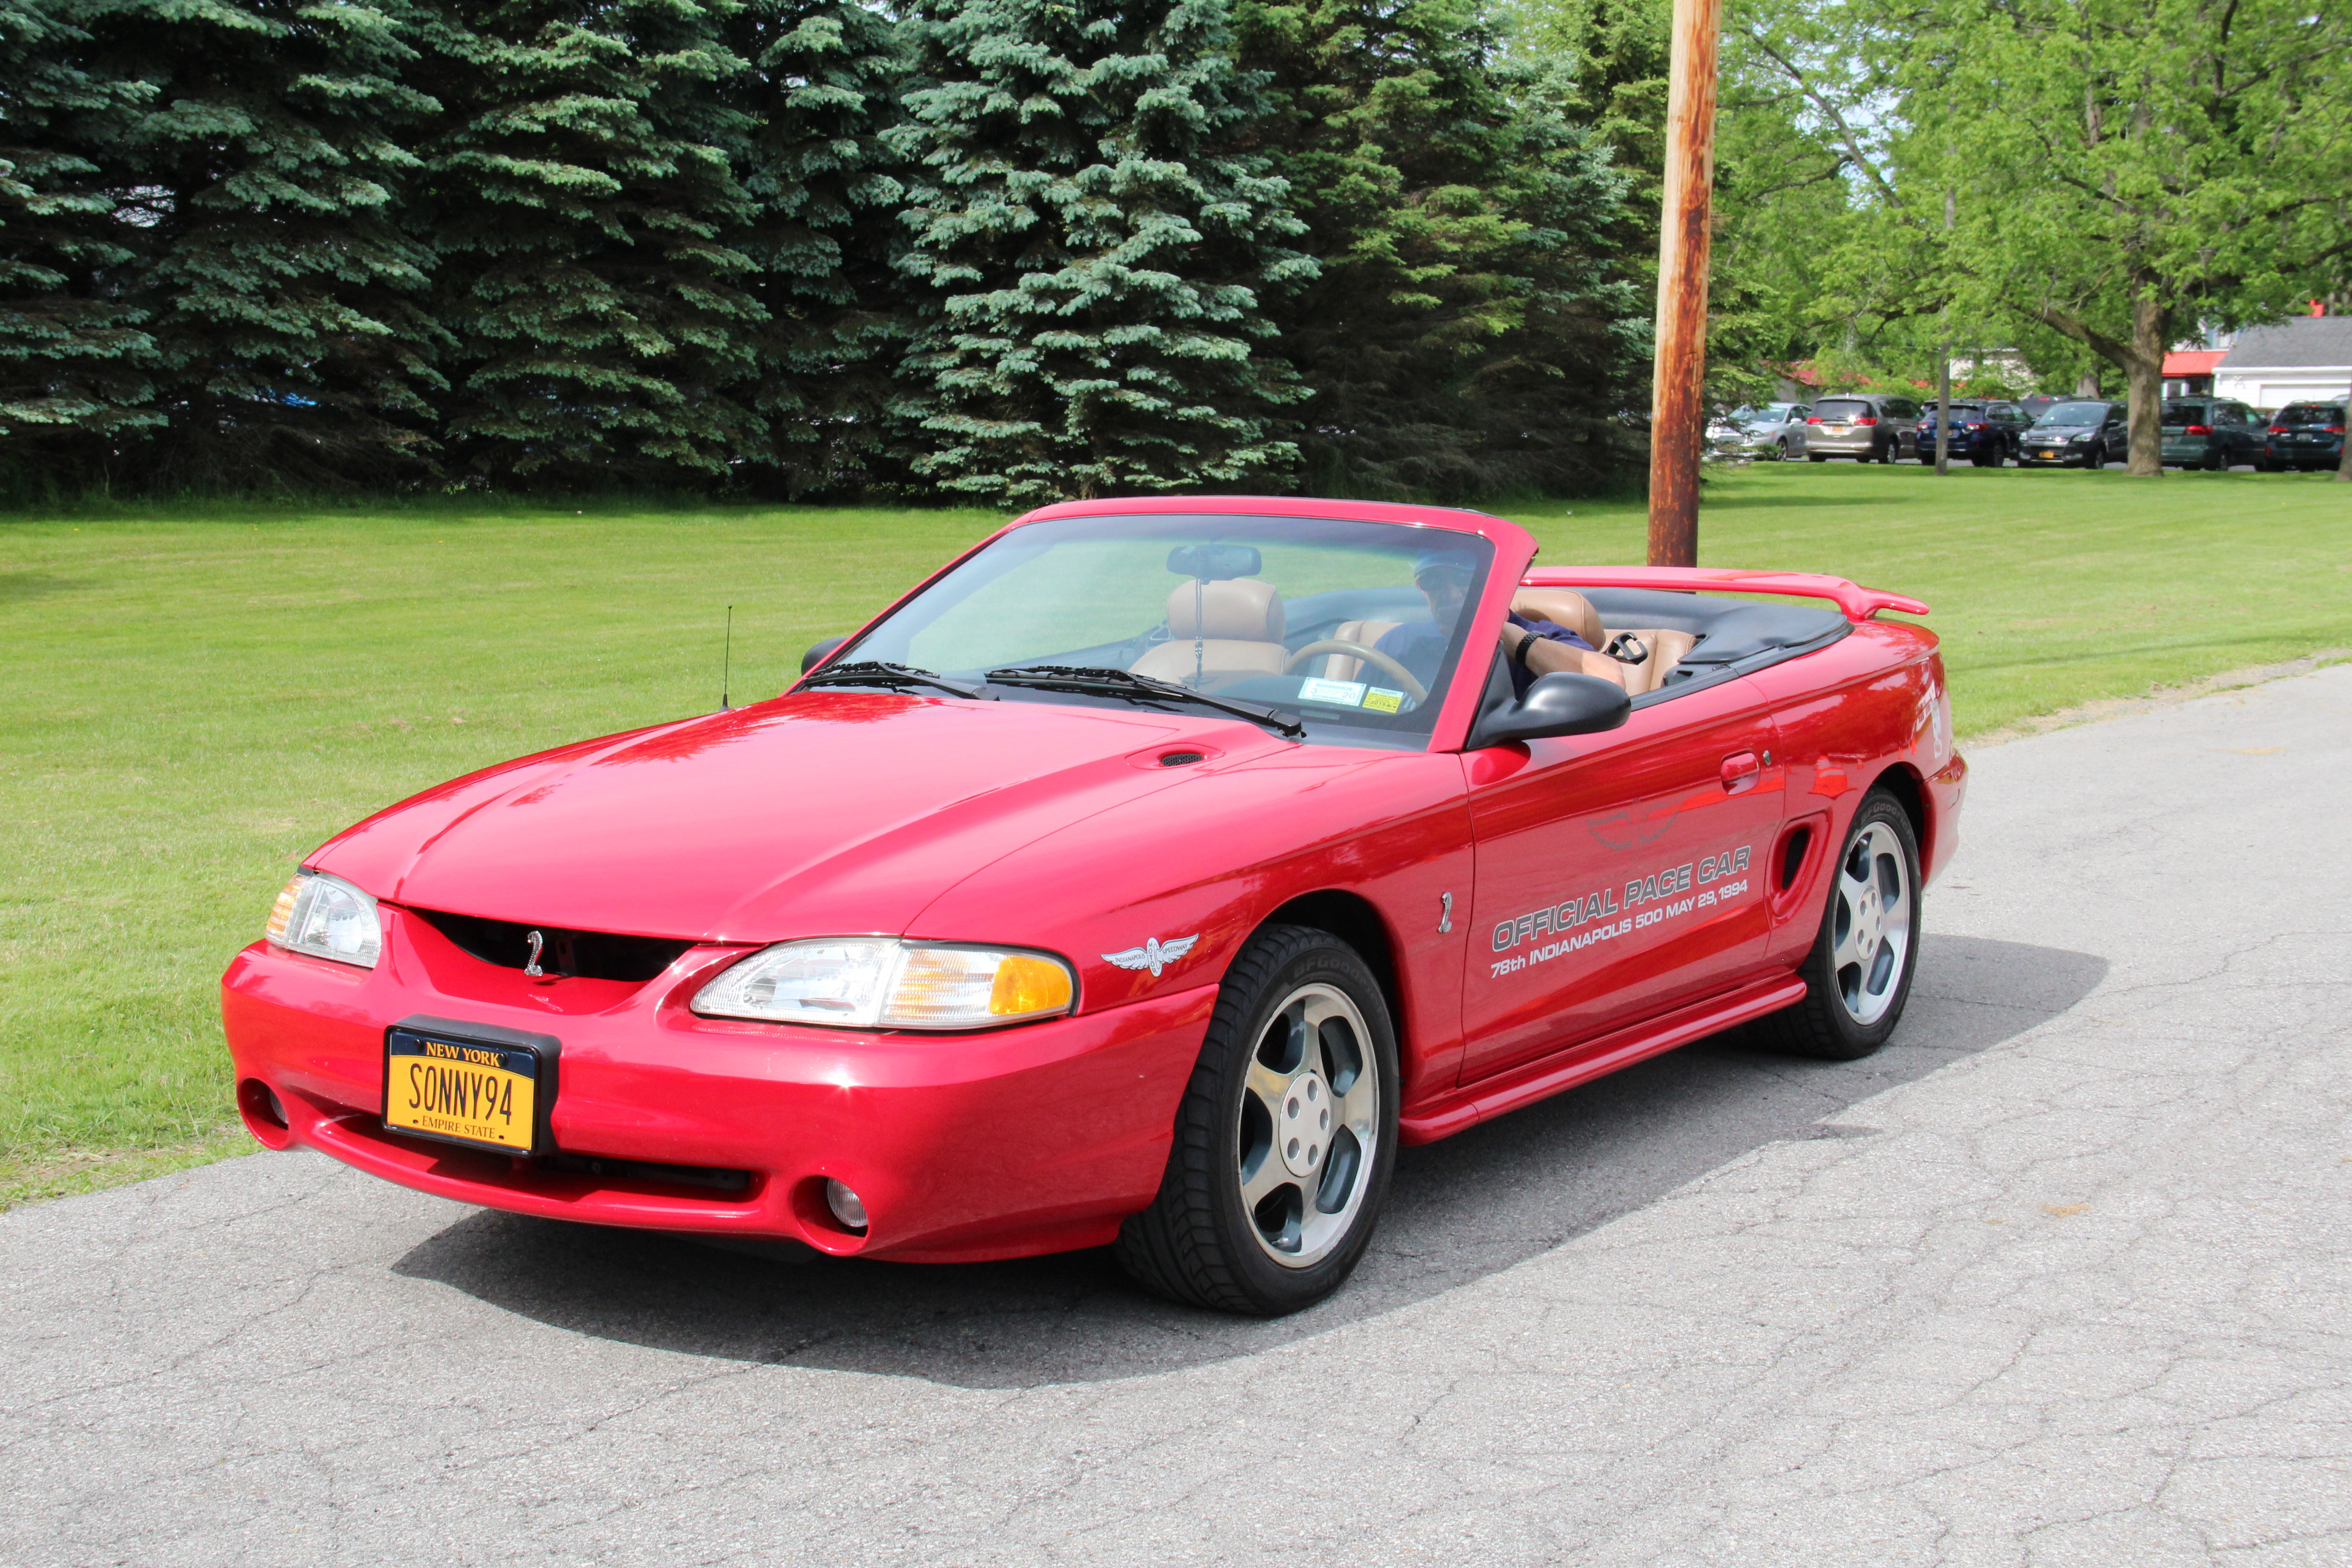 IMG_0474-Class-16-2nd-Carl-Cassiol-1994-Mustang-Conv